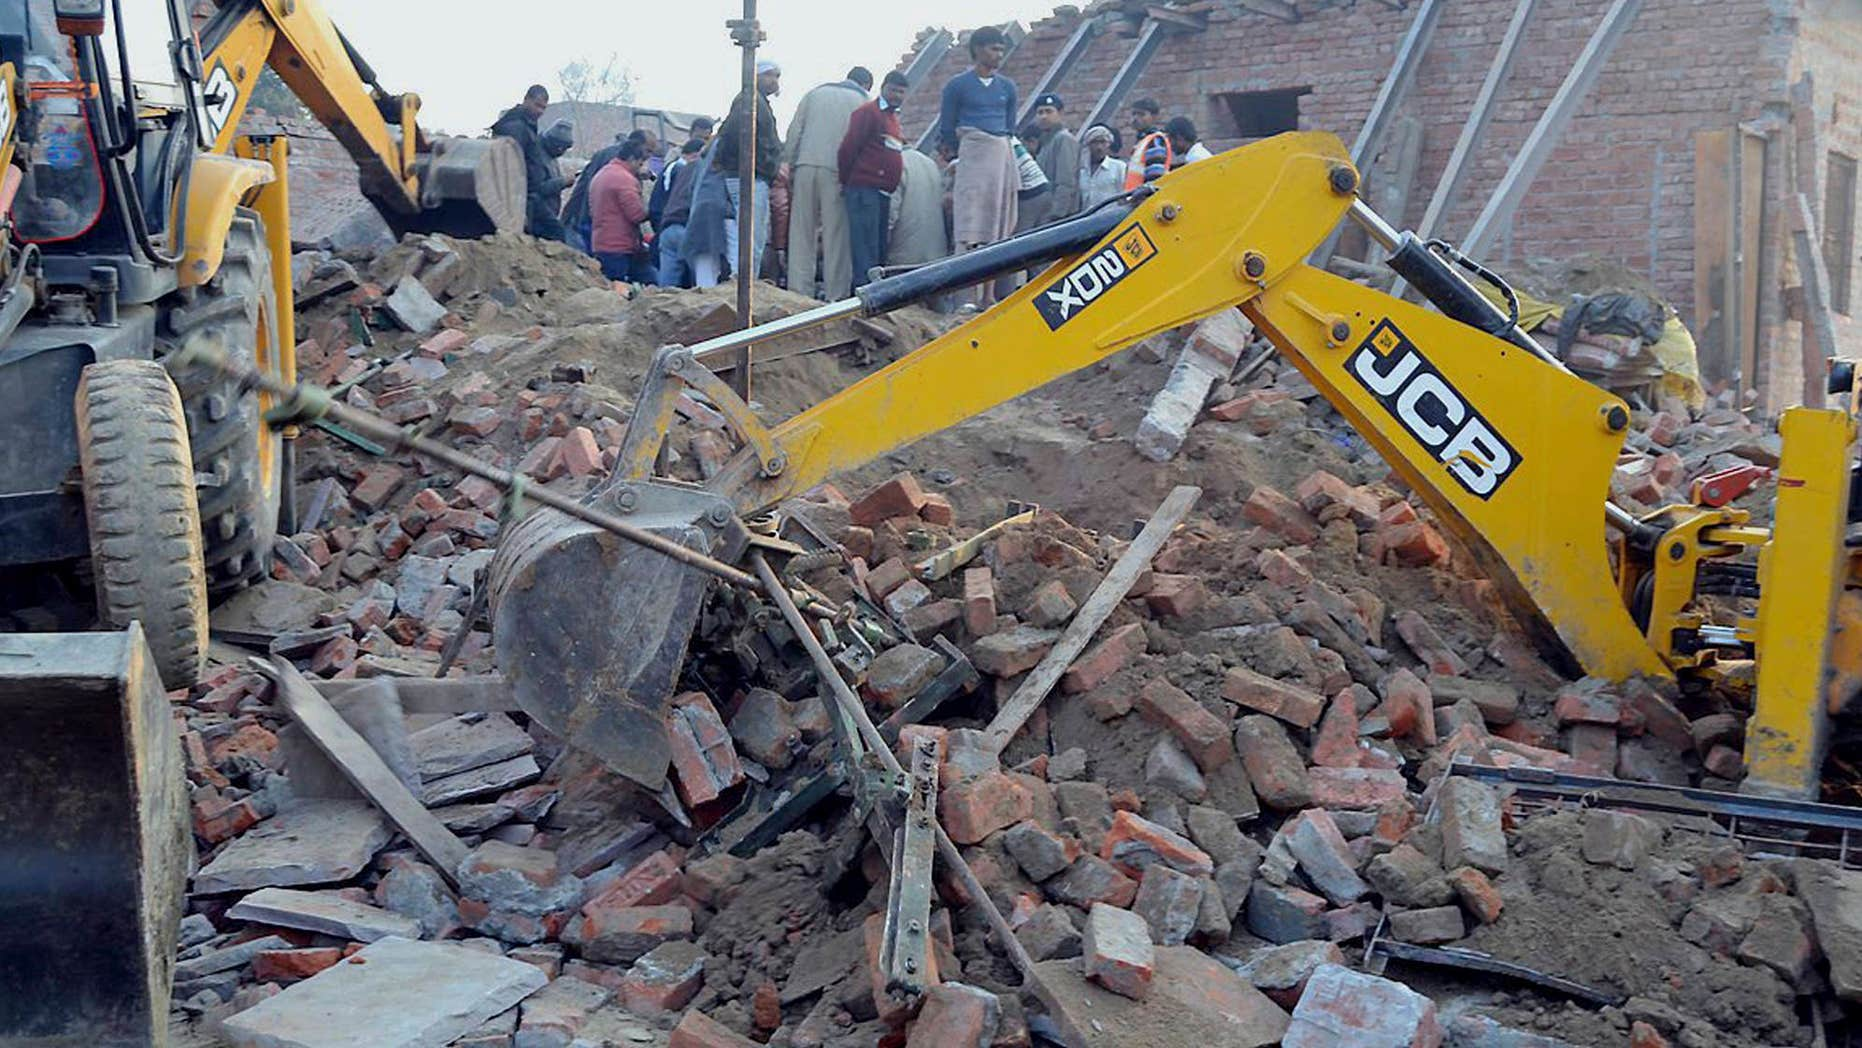 Feb. 15, 2015: Rescuers use machinery to remove the debris after a building that was under construction collapsed overnight, in the town of Mughalsarai.